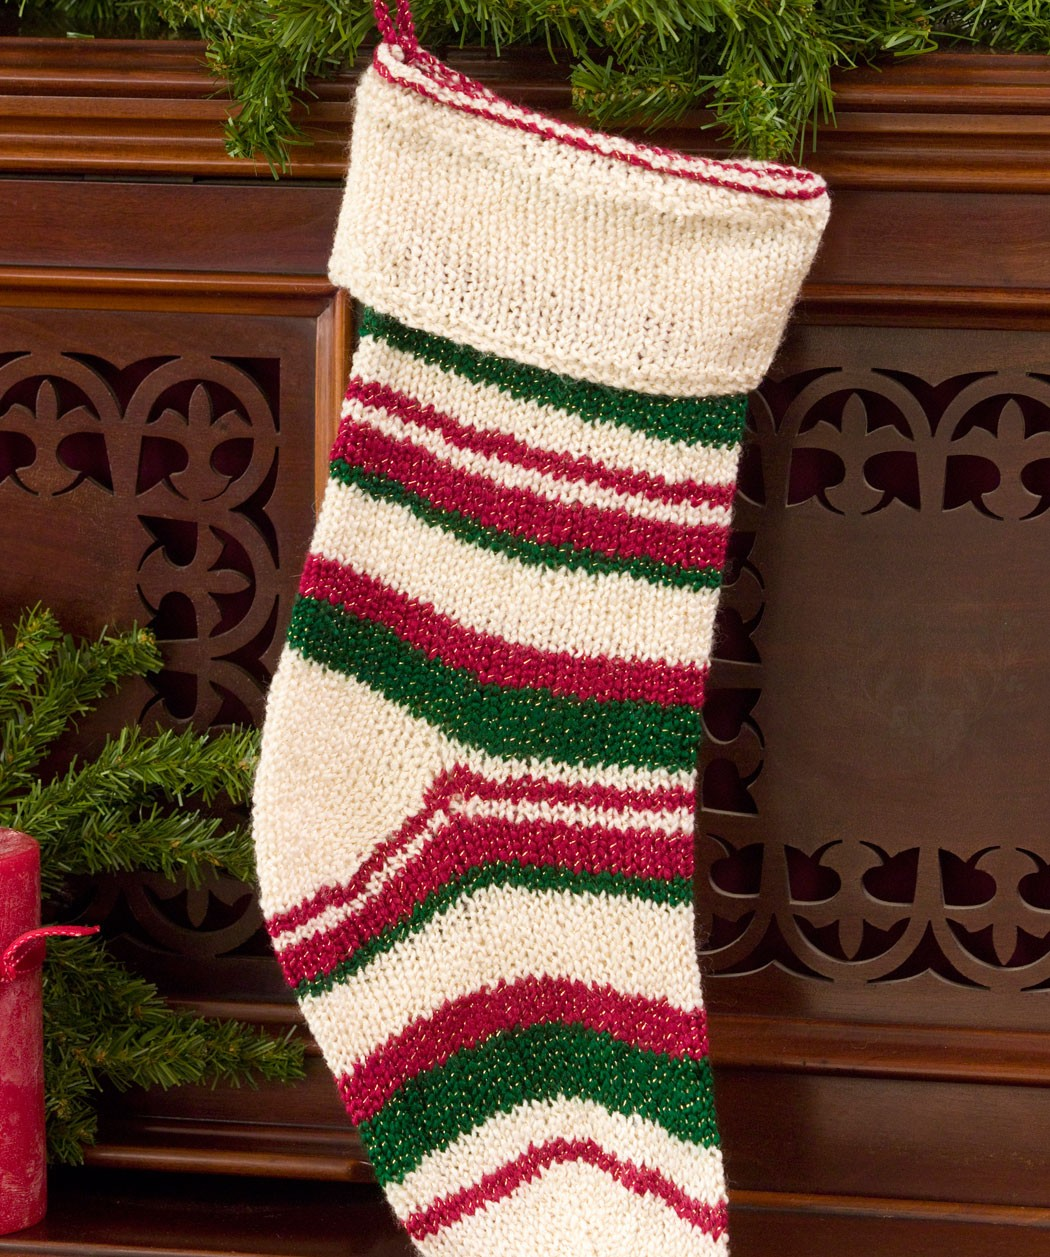 Knit Christmas Stocking Patterns Free : Free Knitting Patterns Christmas Socks images